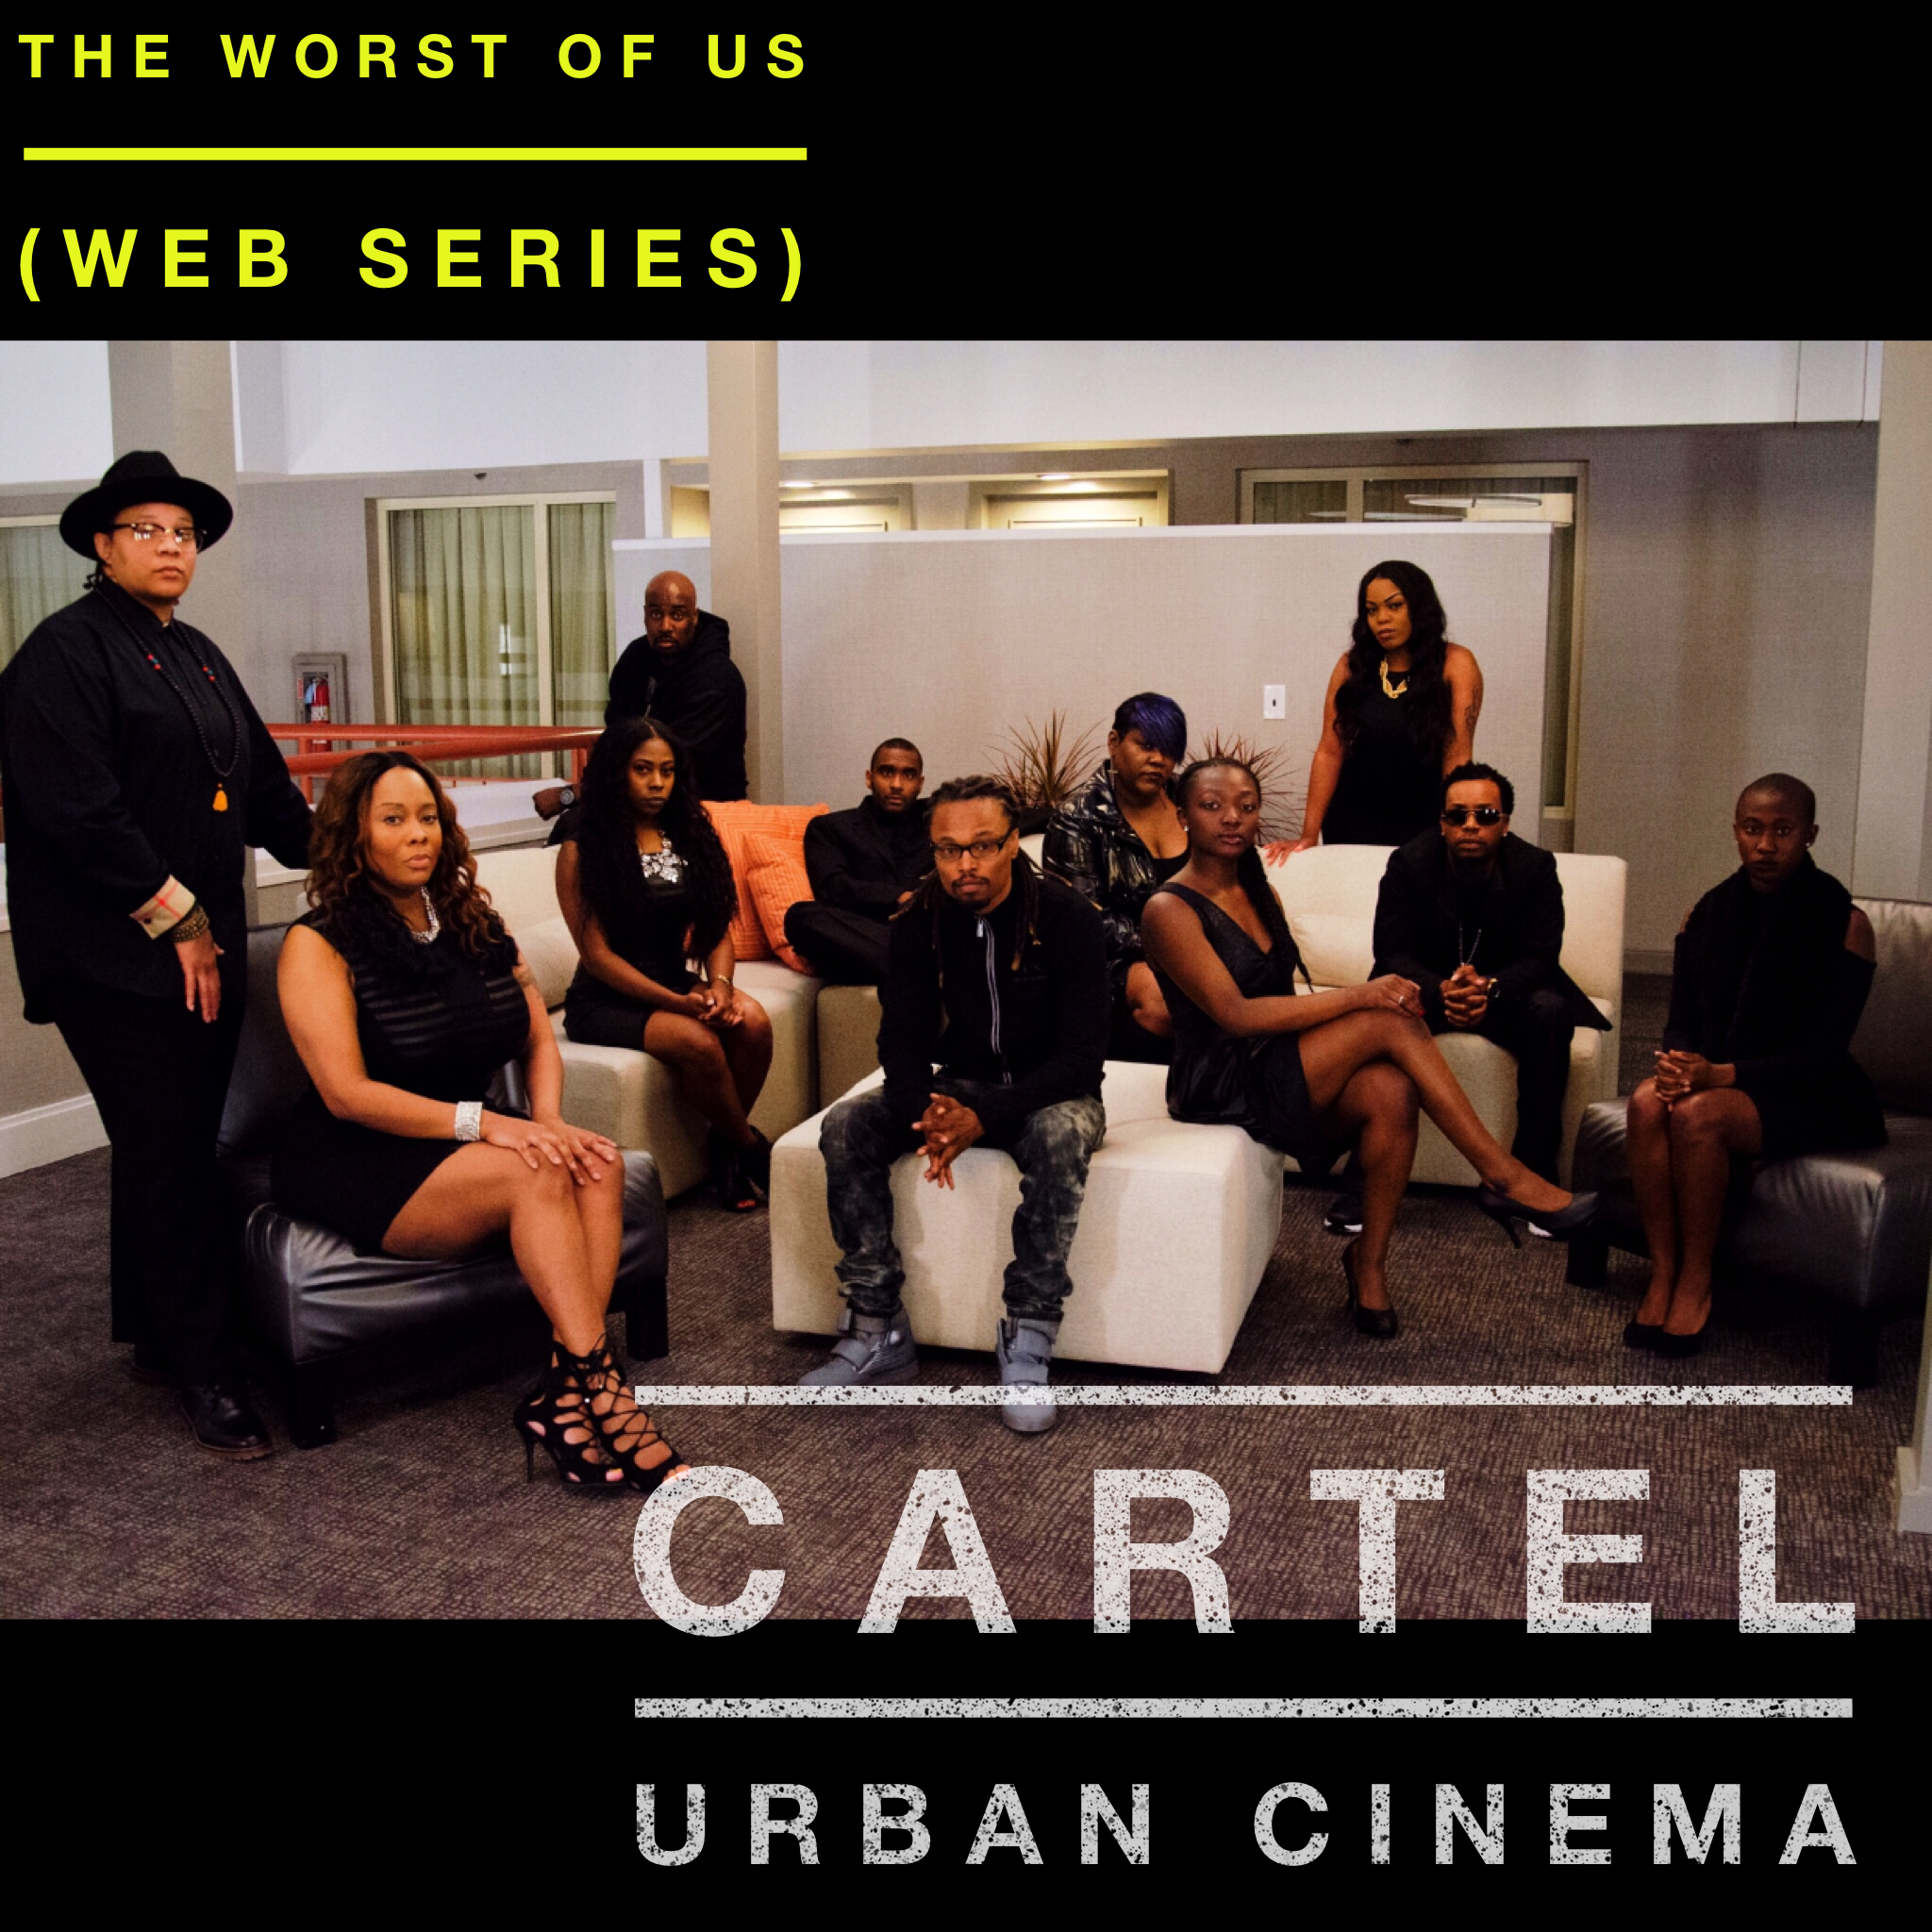 The Worst Of Us (Web Series)